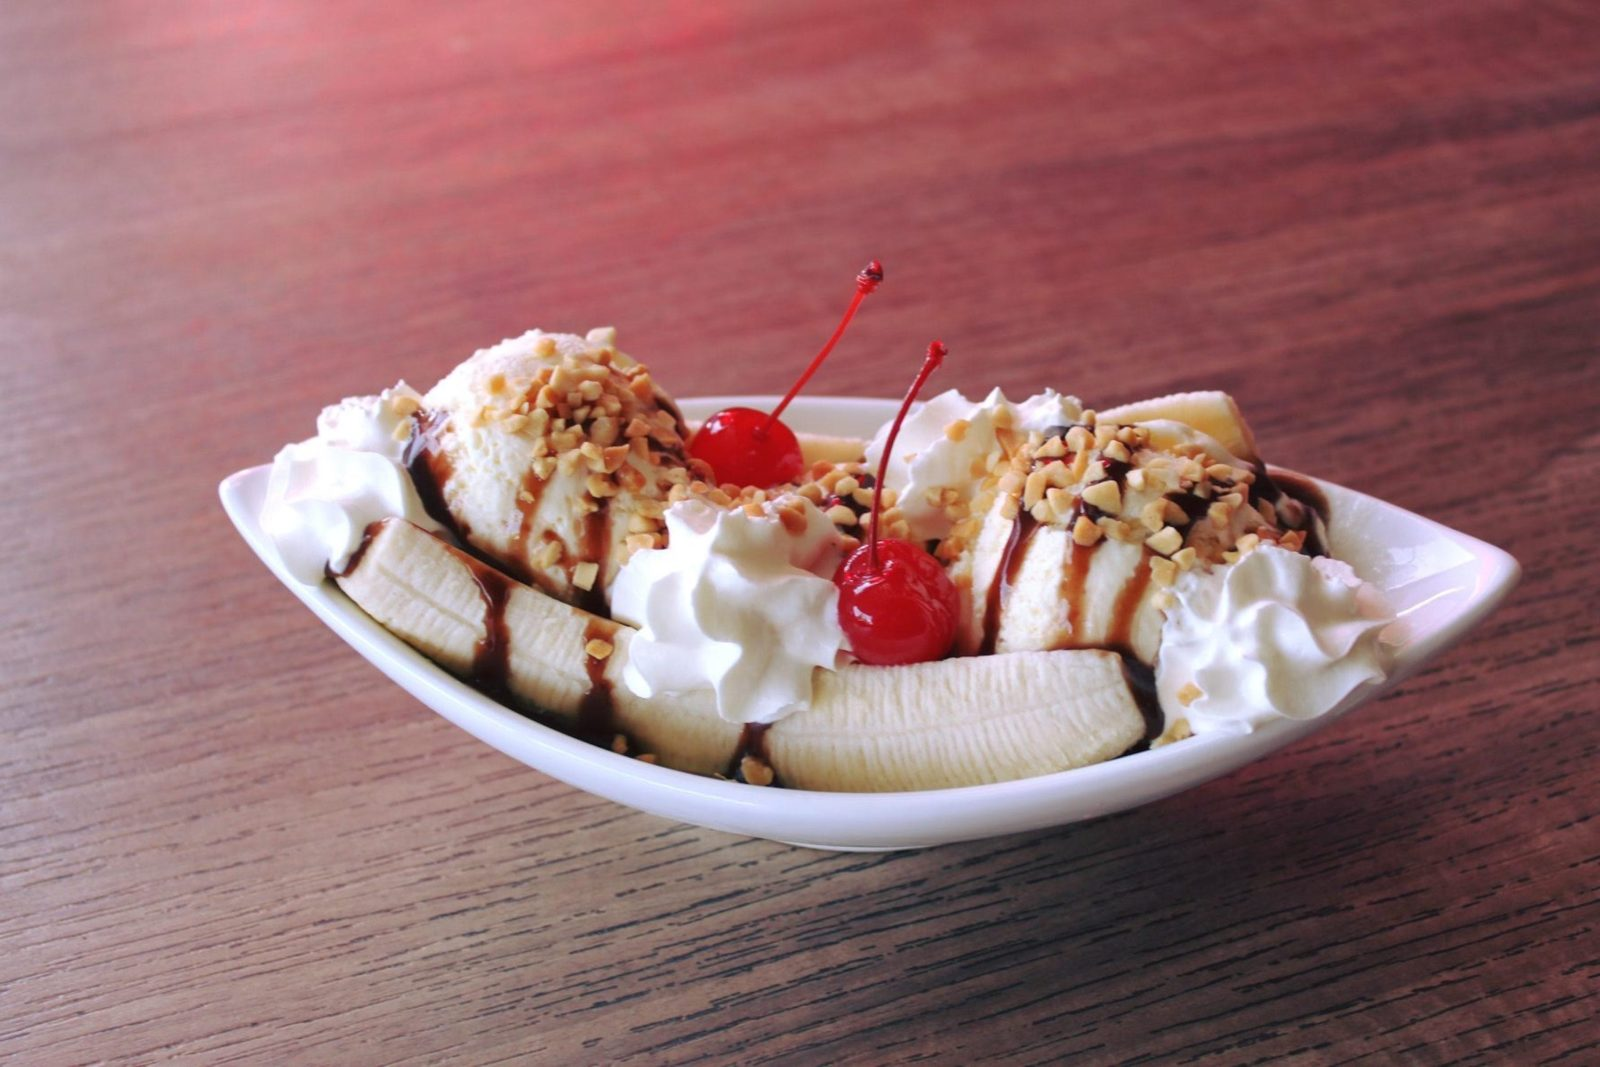 fresh bananas covered in whipped cream, ice-cream, nuts and cherries in a ice-cream boat dish